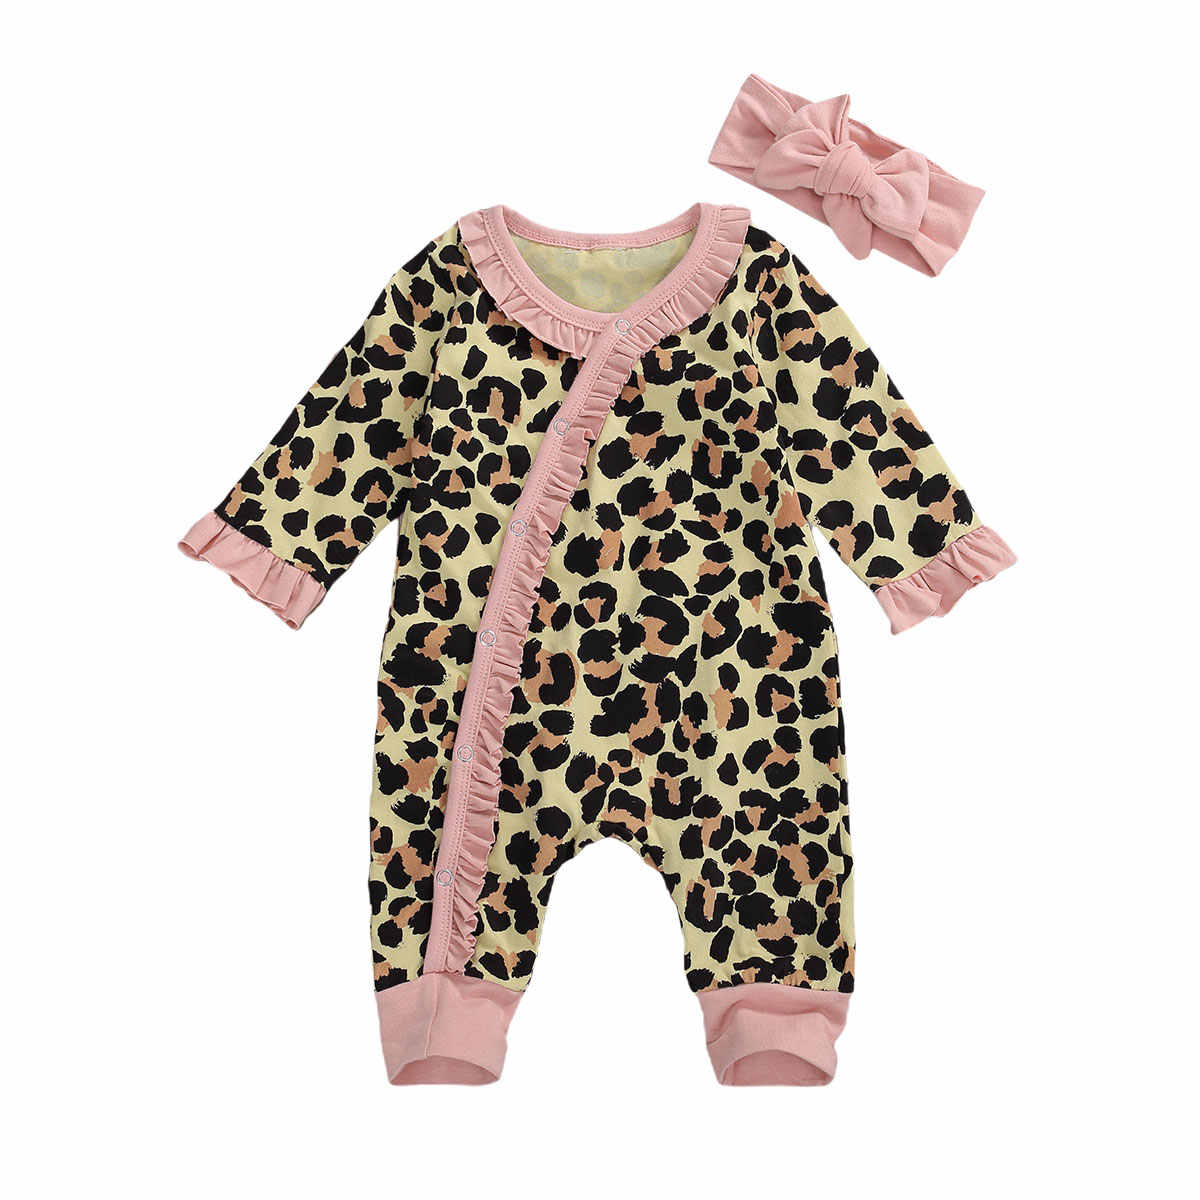 Flower Printed Spring Autumn Baby Girls Dress Long Sleeves Overalls With Cap